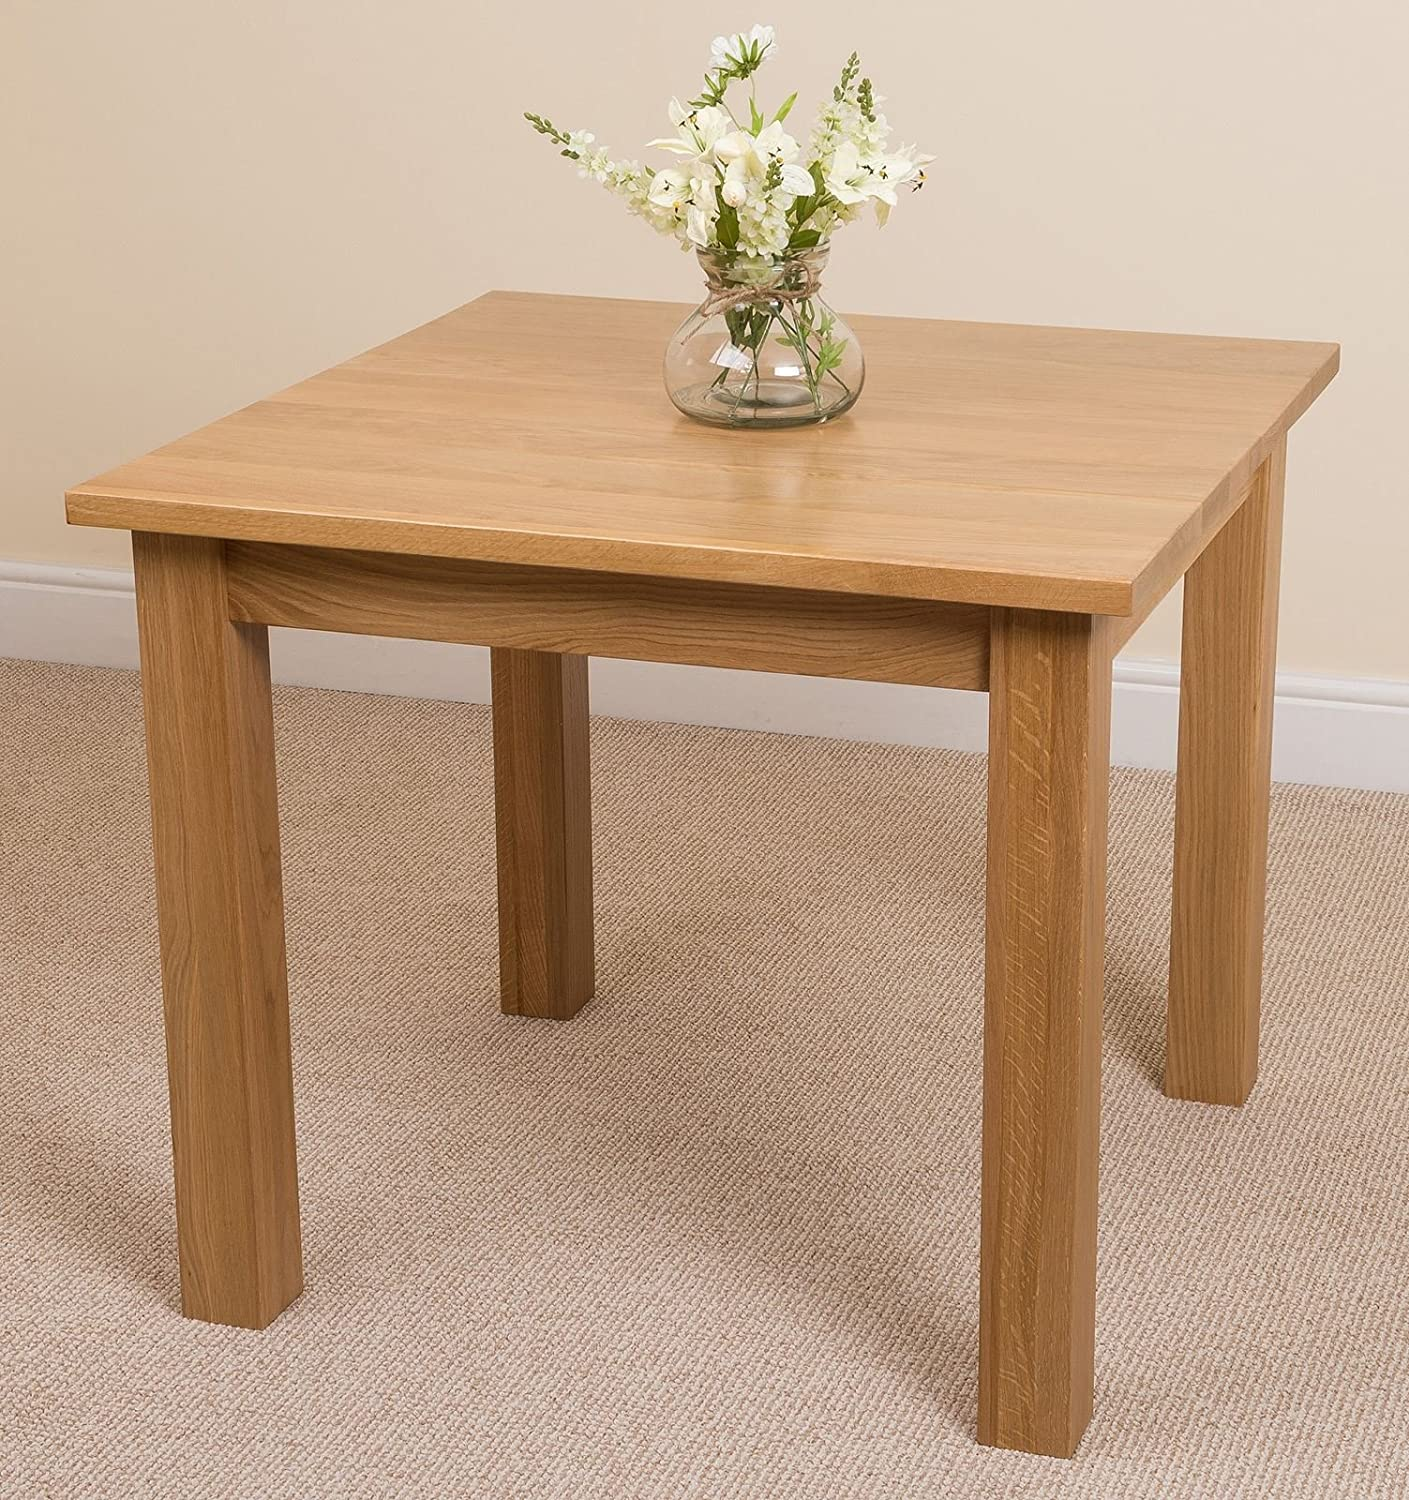 Oslo Solid Oak Square 90cm X Dining Room Table Amazoncouk Kitchen Home